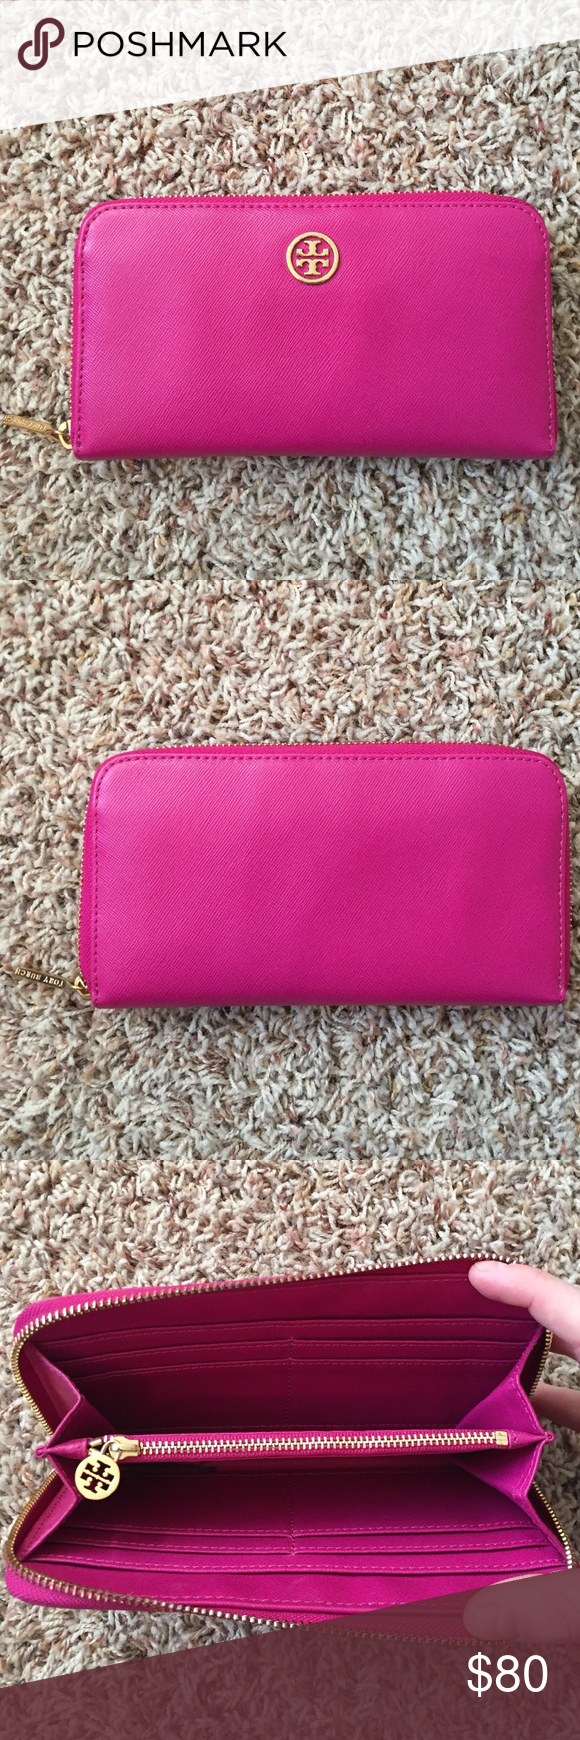 Tory Burch Wallet Magenta Tory Burch wallet. Eight card slots. Two large side pockets for cash. One center pocket with zip for coin. Great condition. Tory Burch Bags Wallets